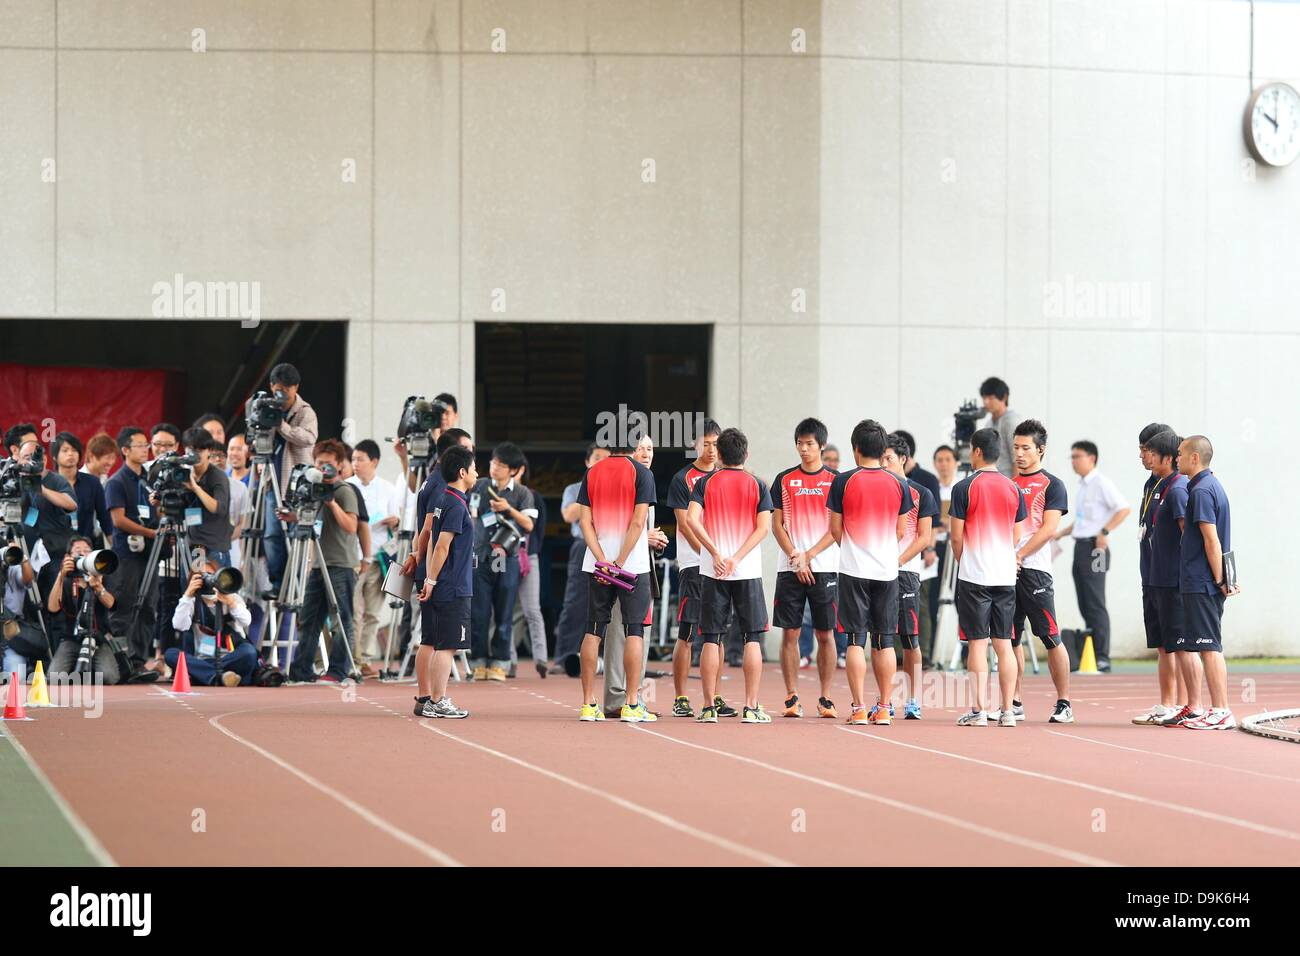 General view, JUNE 21, 2013 - Athletics : Men's 4x100m Relay Japan National Team for the IAAF World Championships - Stock Image